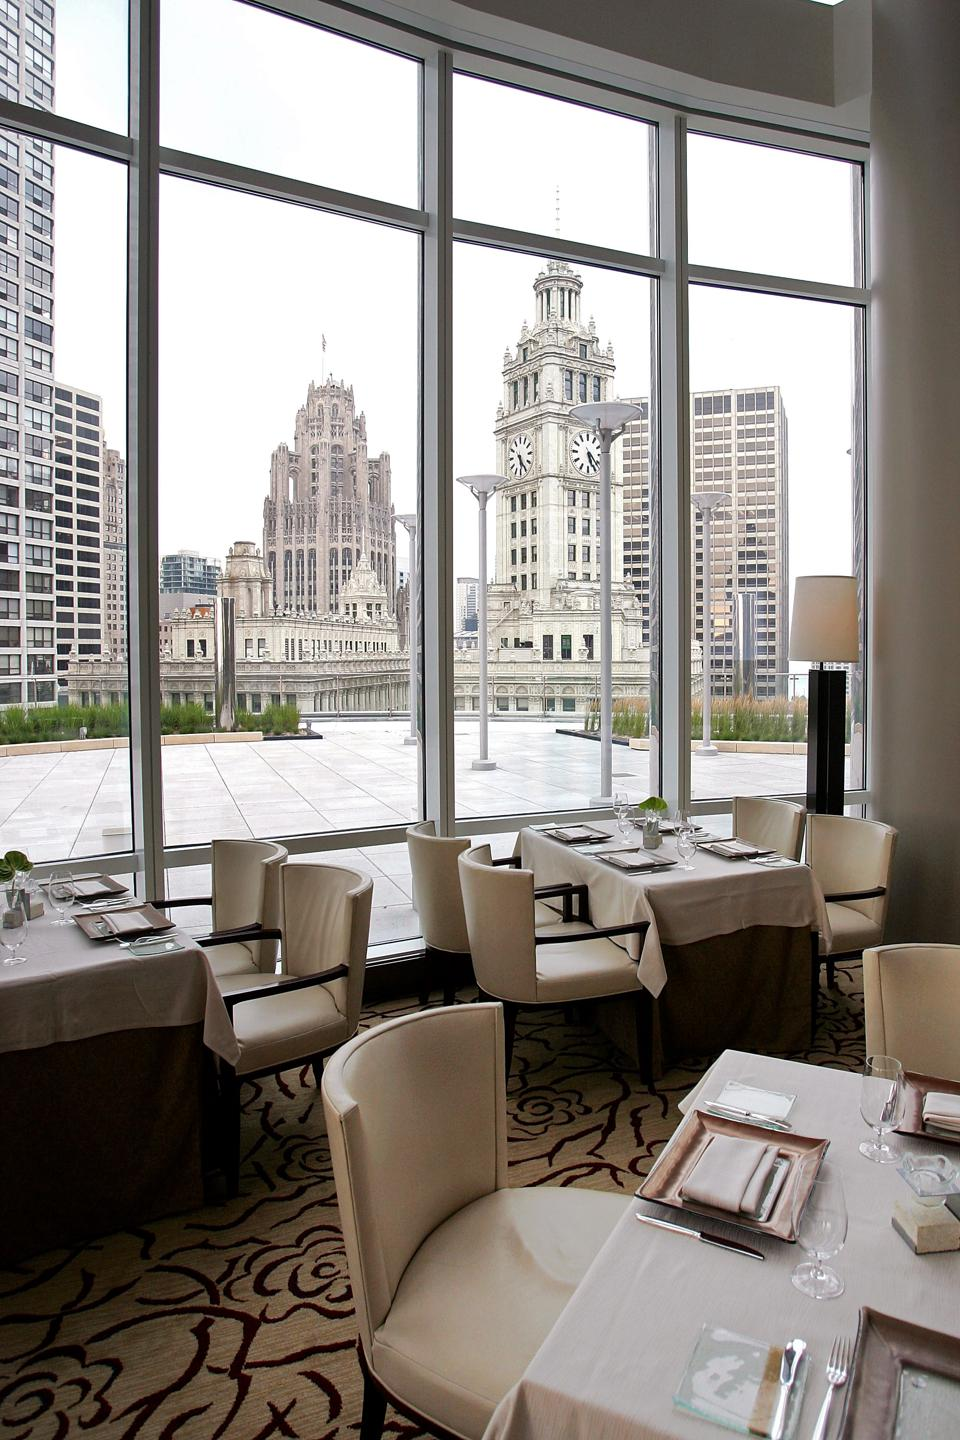 Online reservation battle heats up for opentable for 0pen table chicago